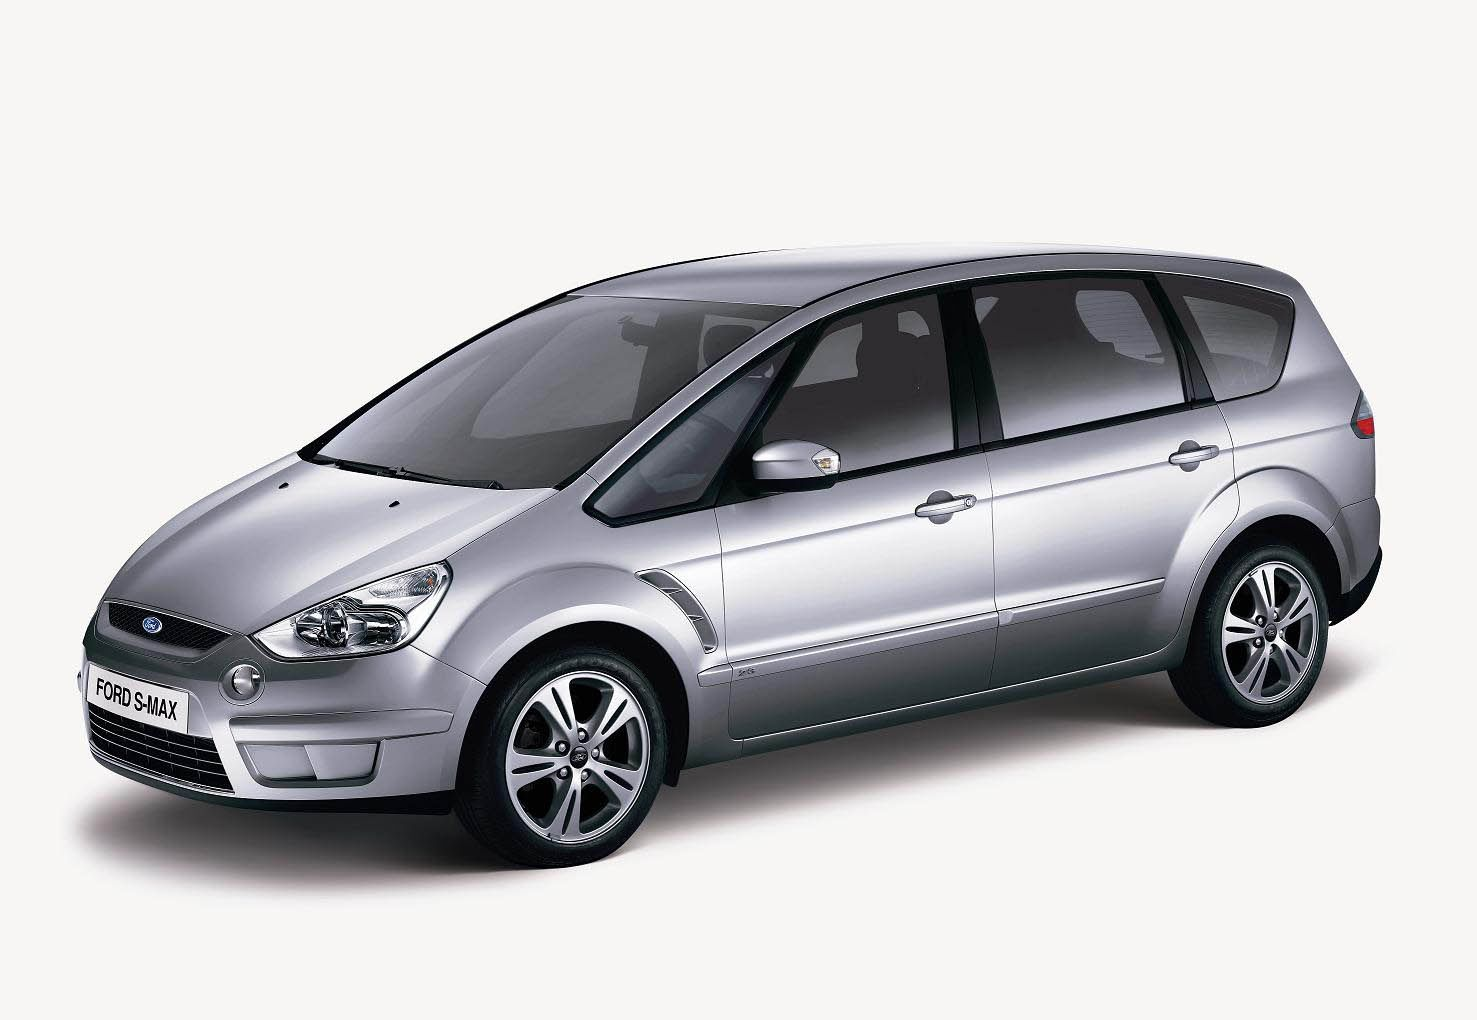 ford s max specs of wheel sizes tires pcd offset and. Black Bedroom Furniture Sets. Home Design Ideas